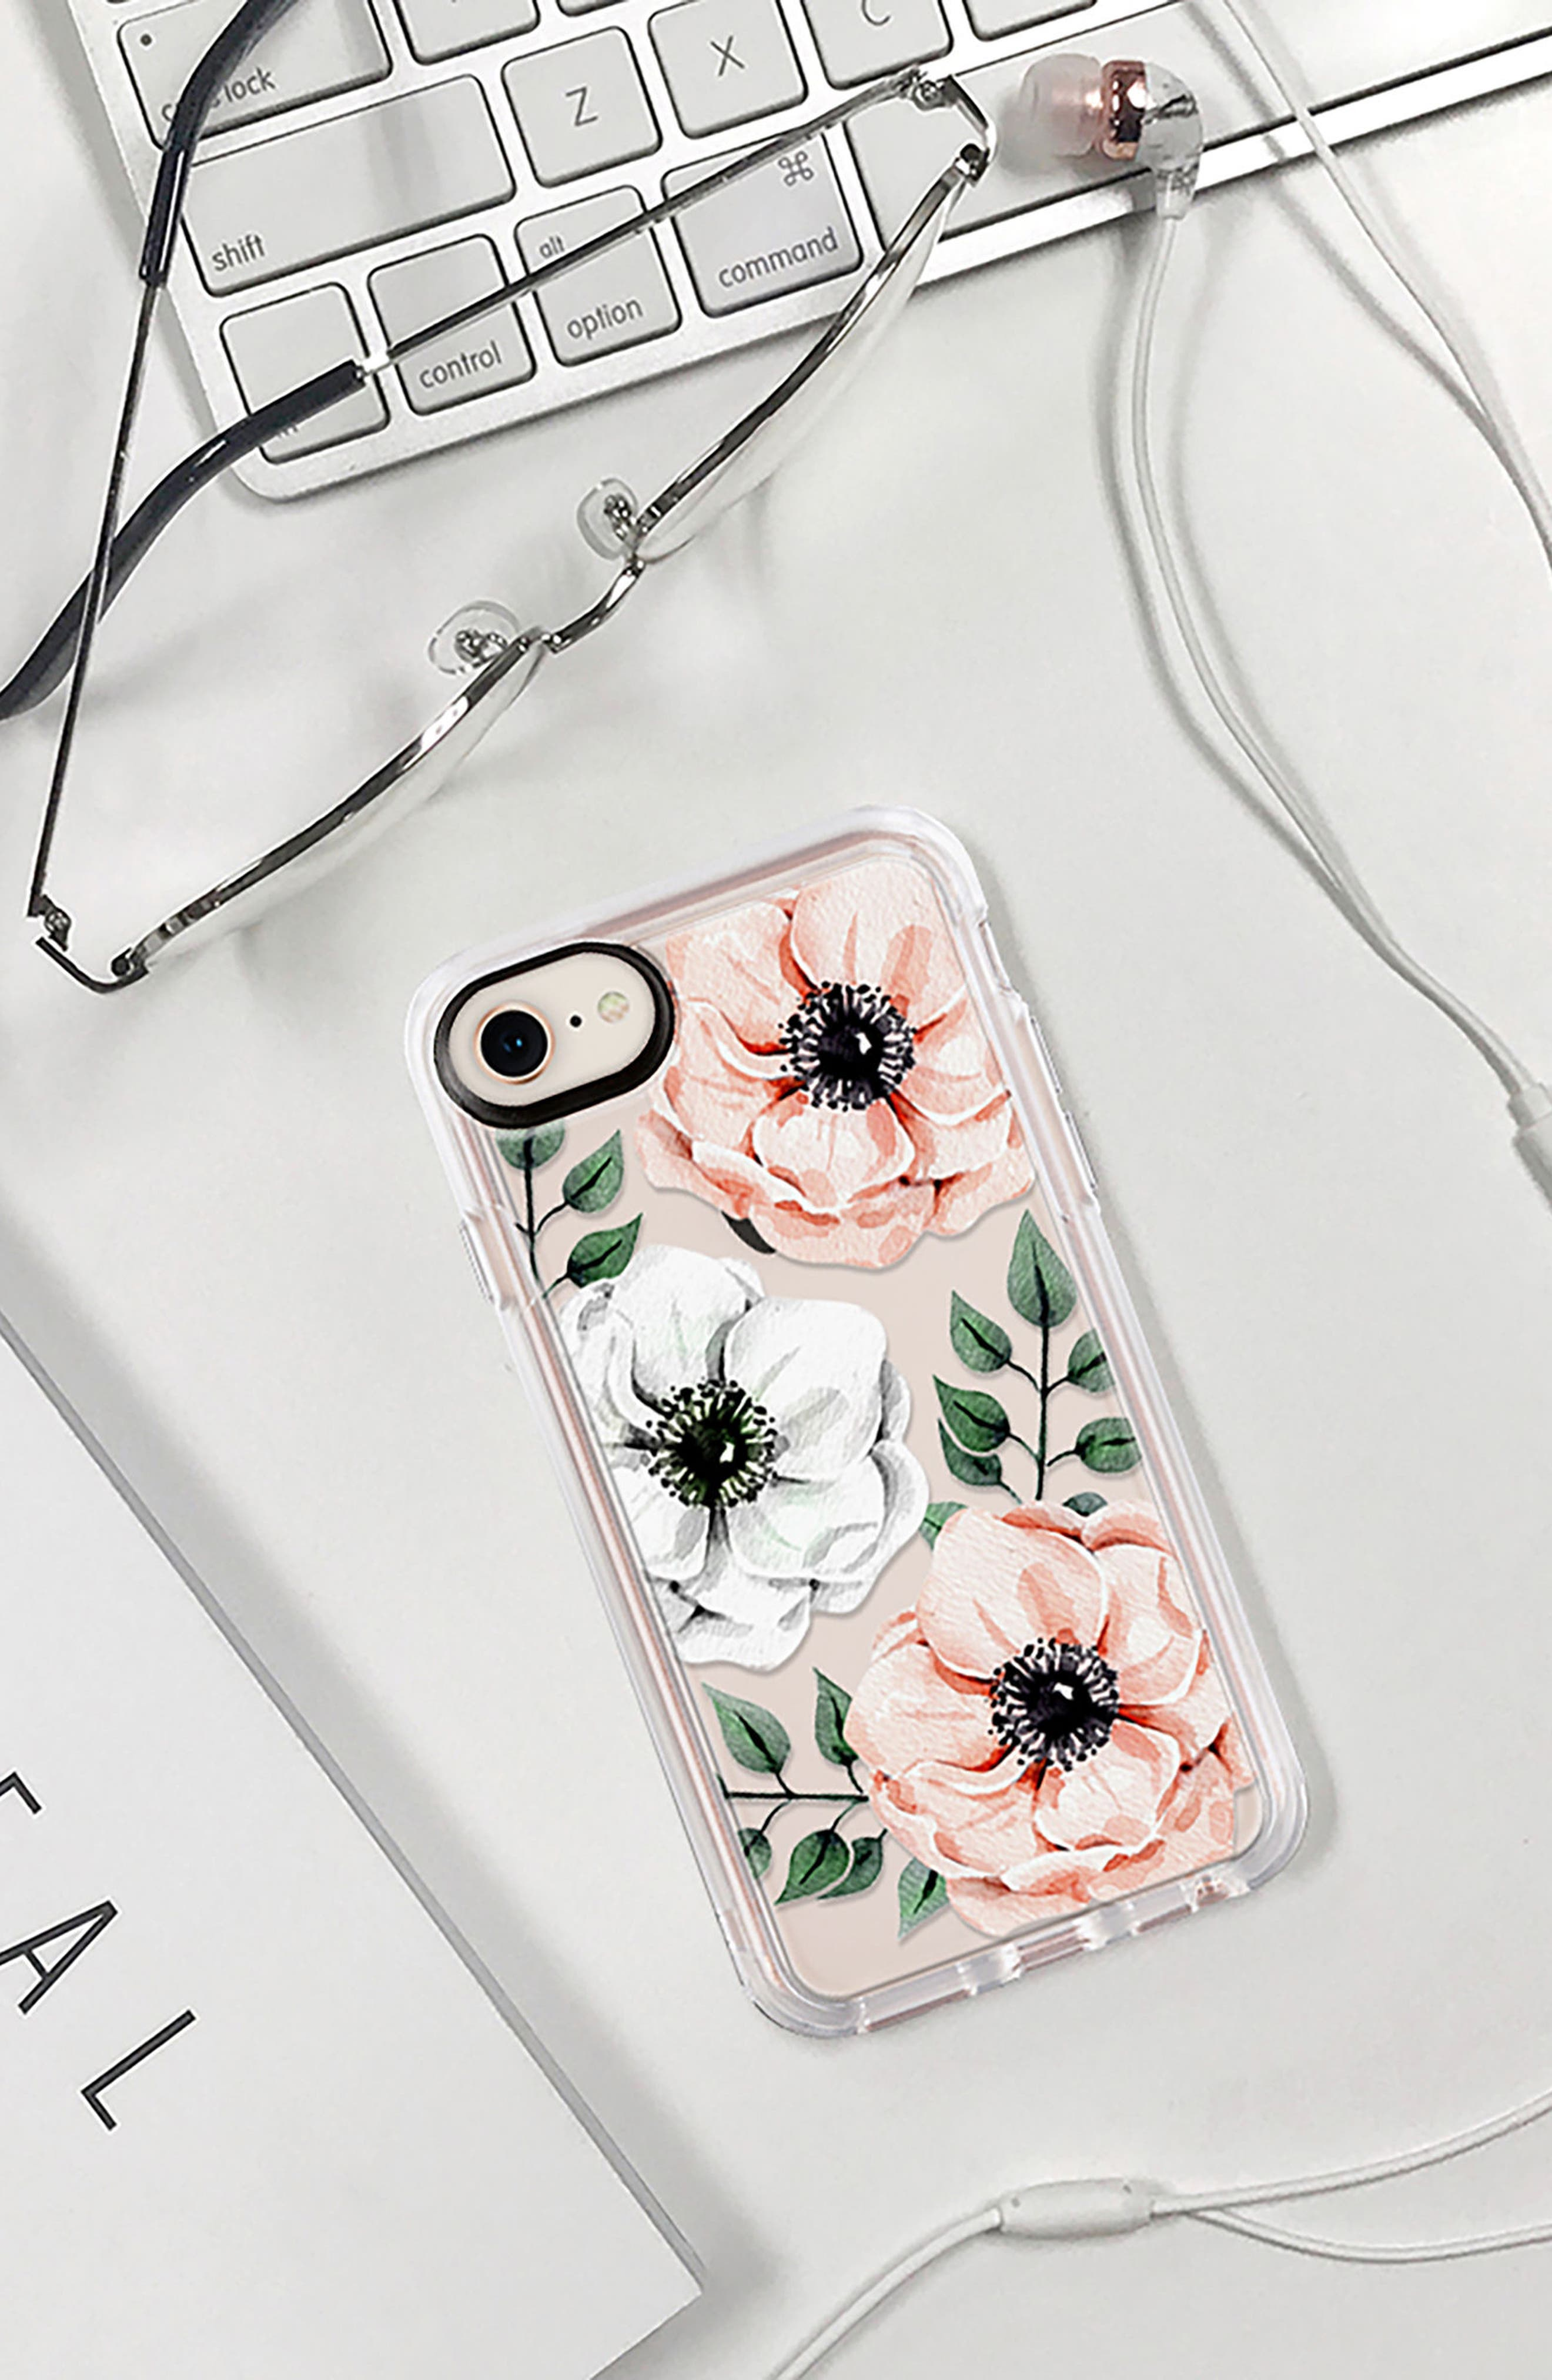 Watercolor Grip iPhone 7/8 & 7/8 Plus Case,                             Alternate thumbnail 8, color,                             PINK AND WHITE